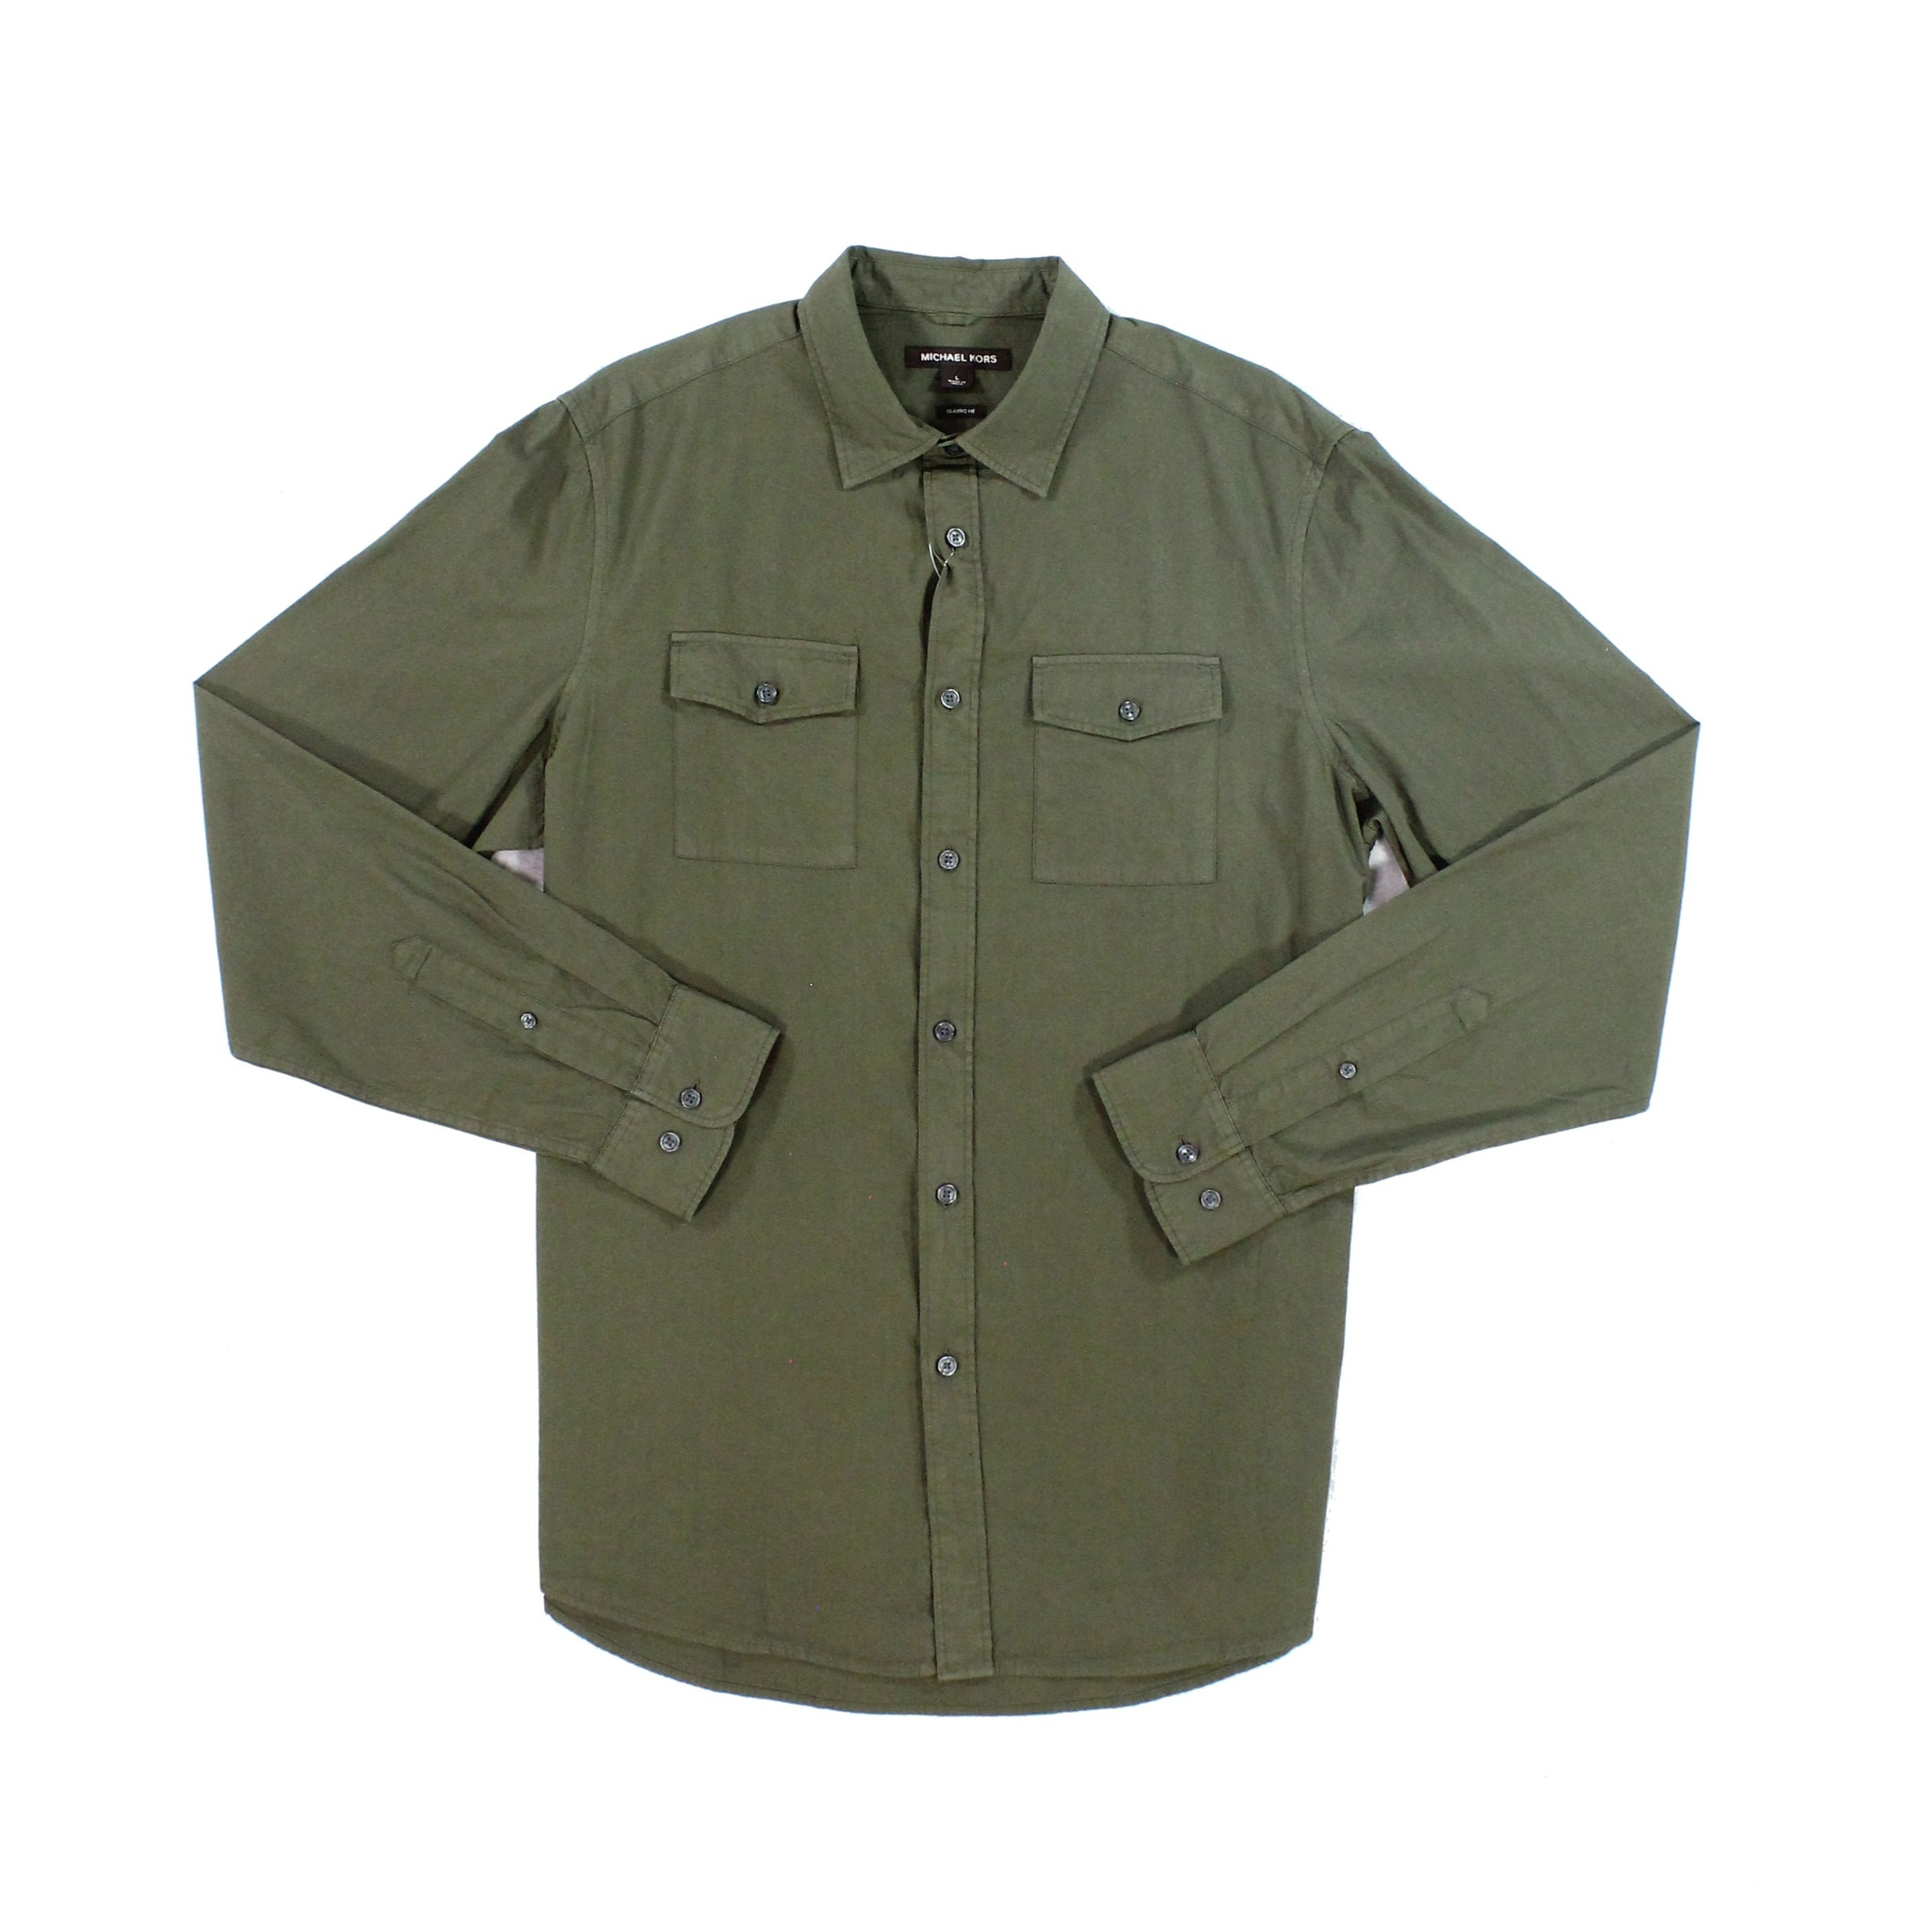 Michael Kors NEW Olive Green Mens Size L Button Down Shirt